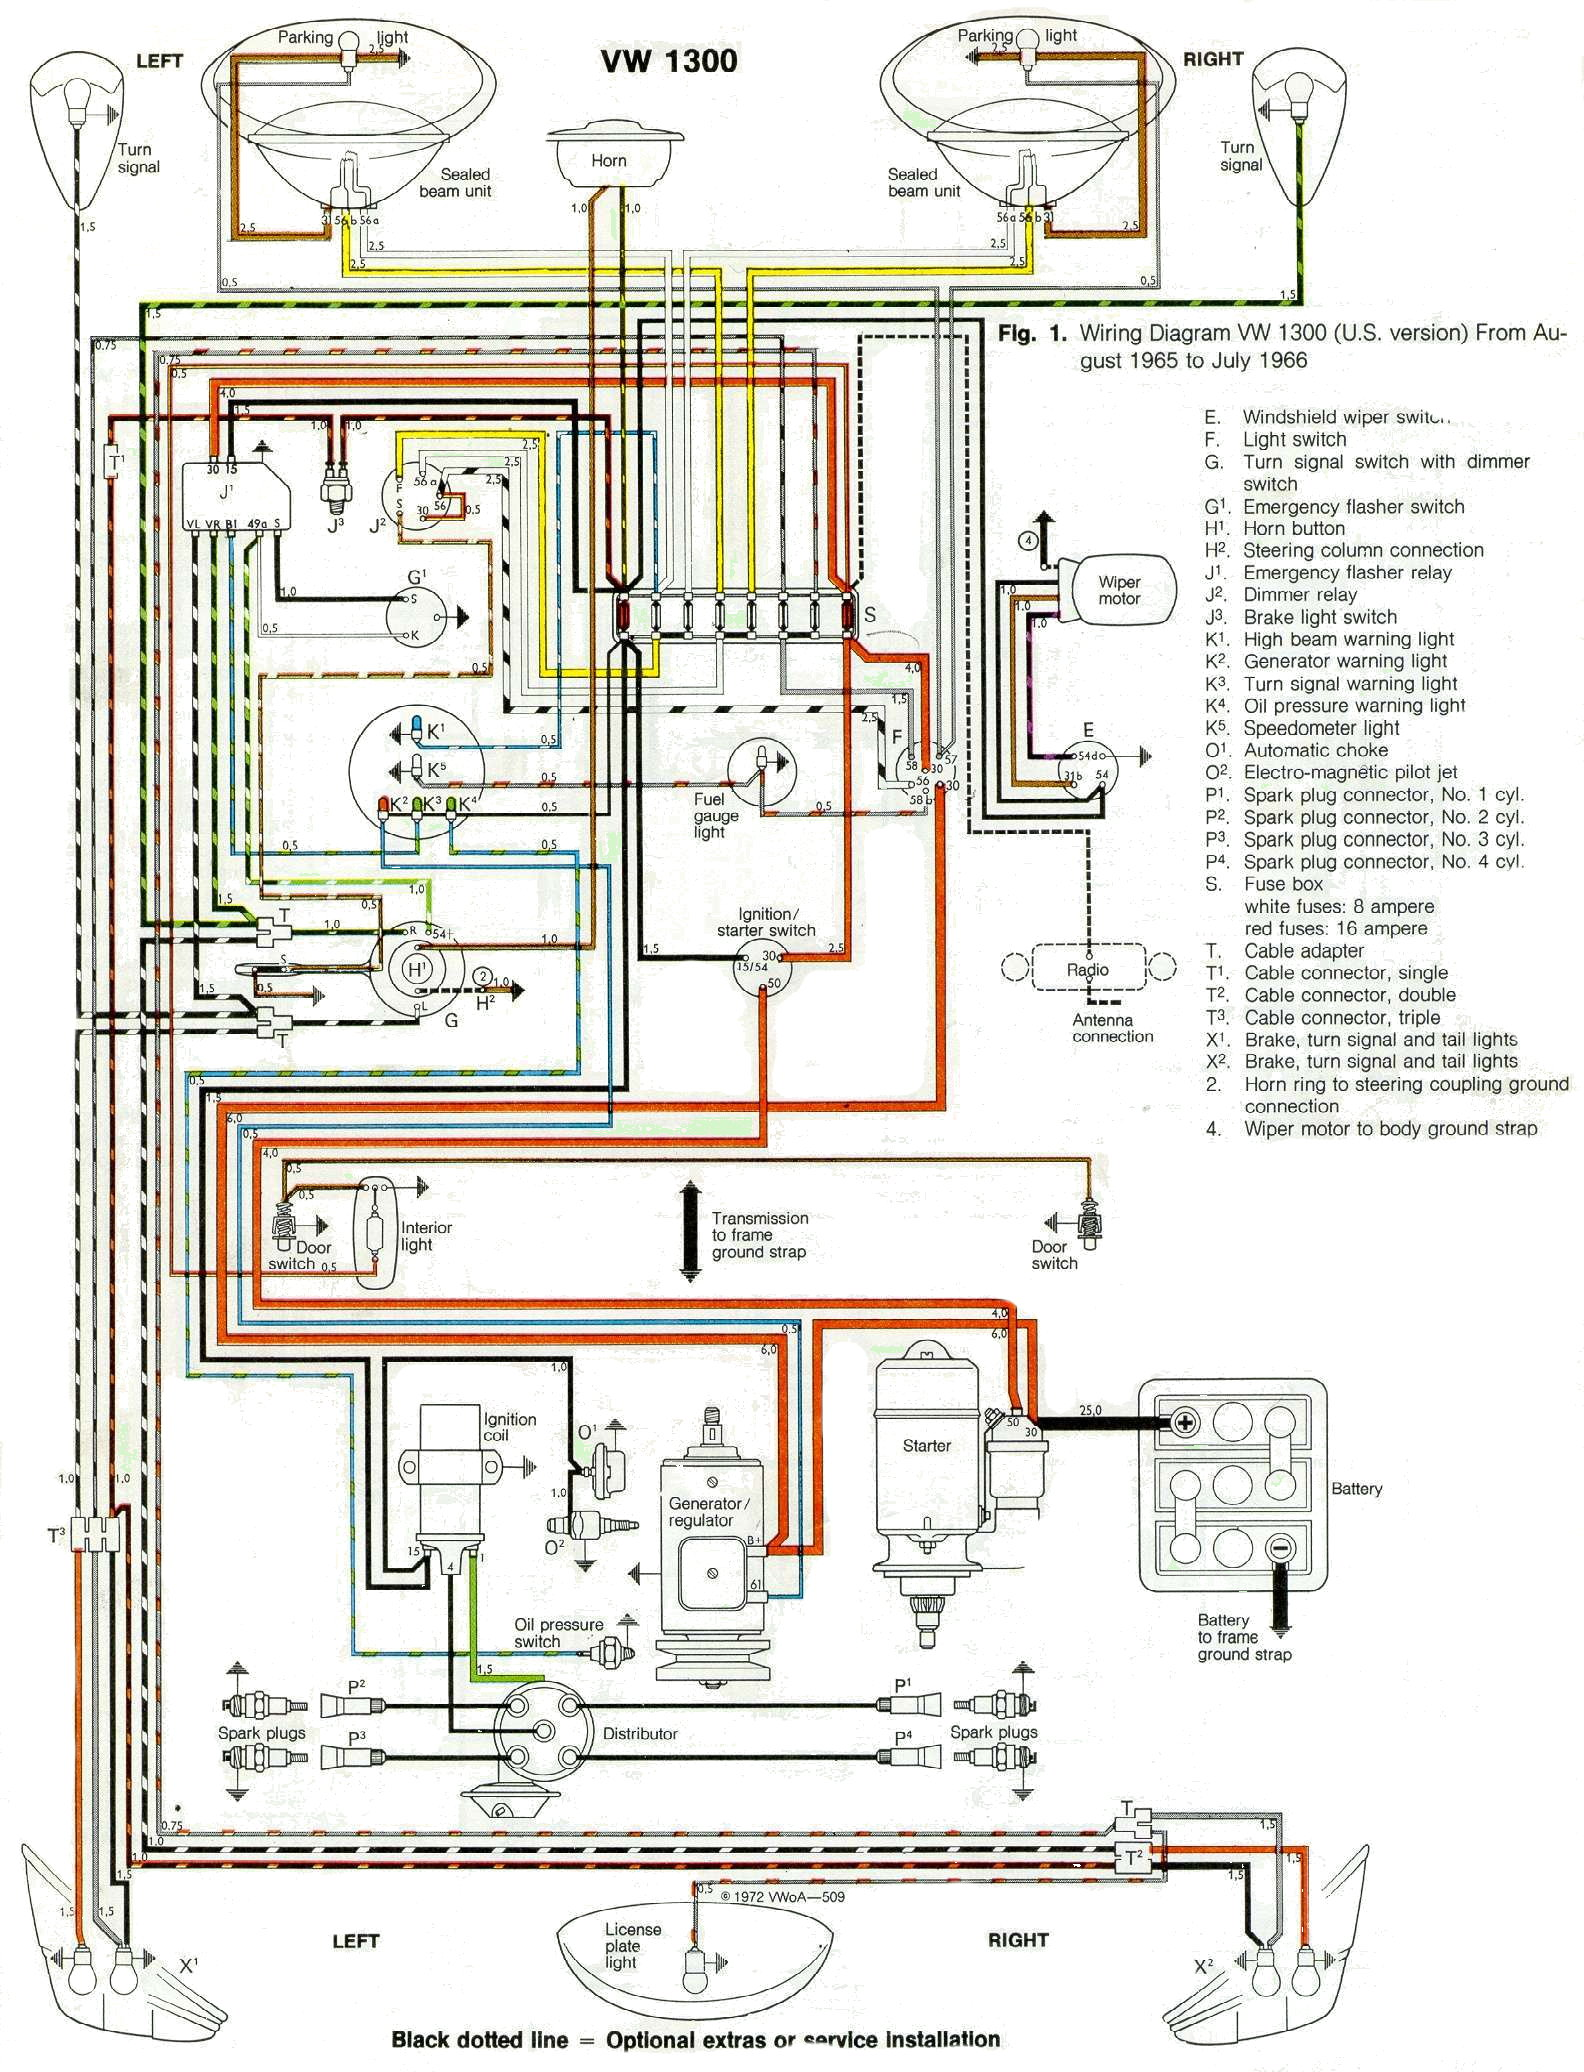 panda wiring diagrams with 65 66 F100 Pictures on 2015 Nissan Altima Radio Wiring Diagram also Panda Bear Diagram additionally Fuse Box Diagram 4eb9478ff27a52b5 likewise 165278 Abs Wiring Help Electrical Experts further 65 66 F100 Pictures.